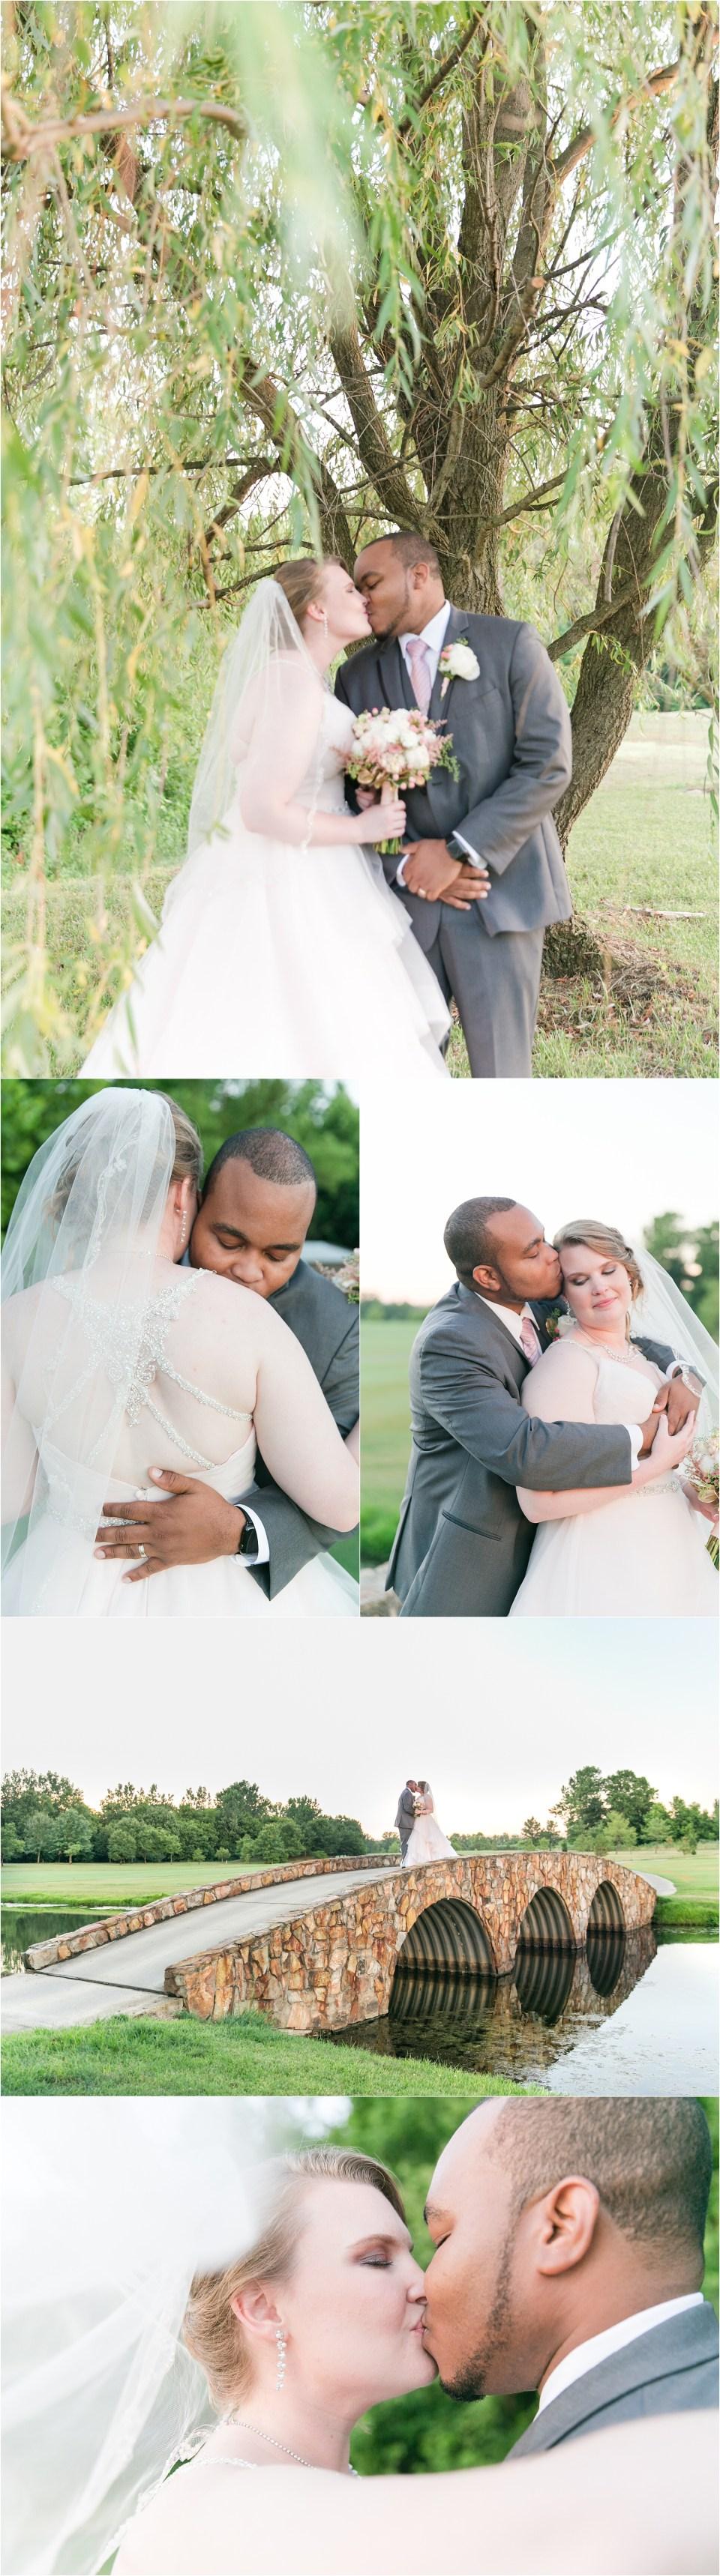 costola photography,Renditions Wedding Photographer, Annapolis, Maryland